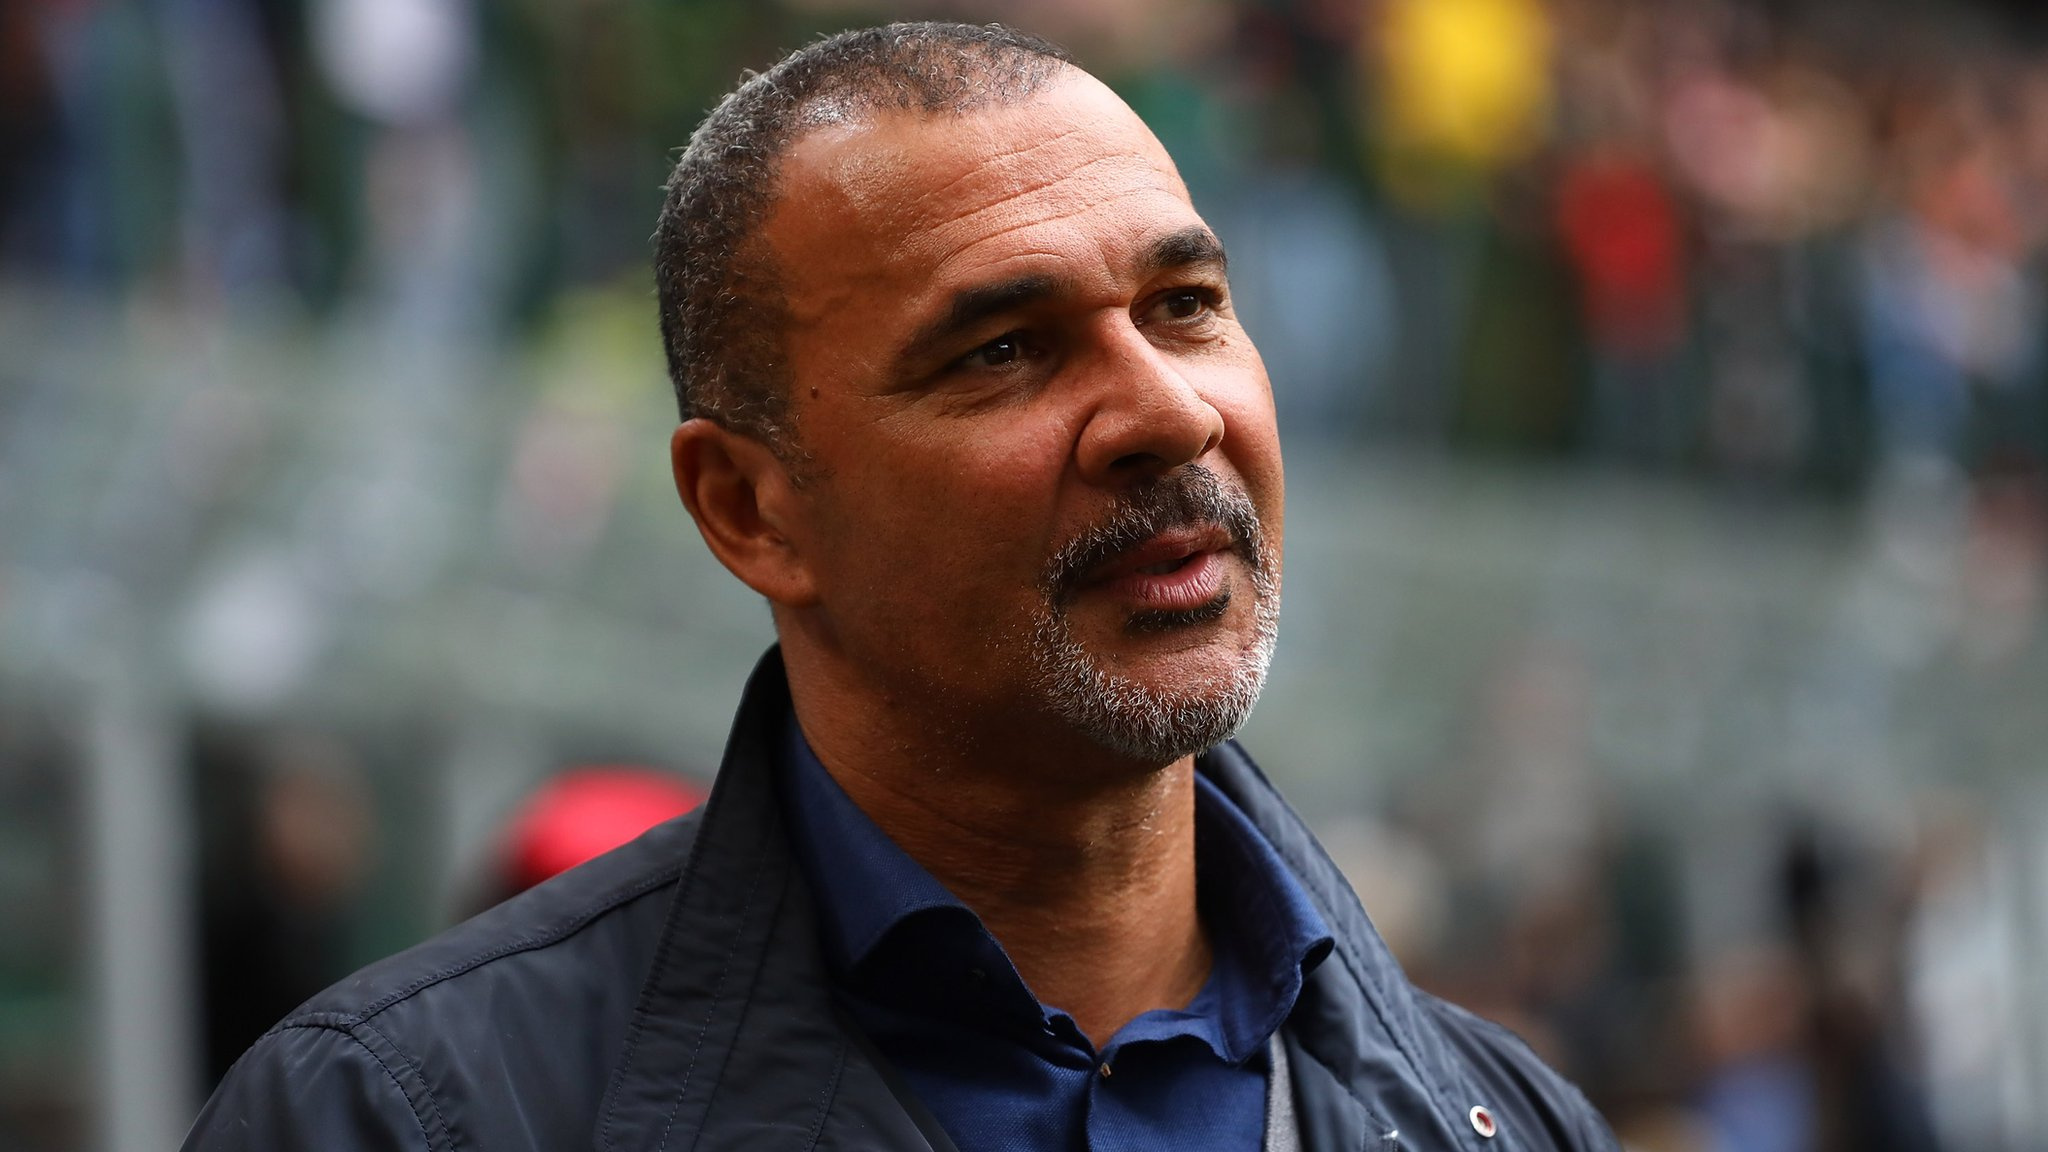 Black footballers find it 'almost impossible' to speak out over racism - Gullit